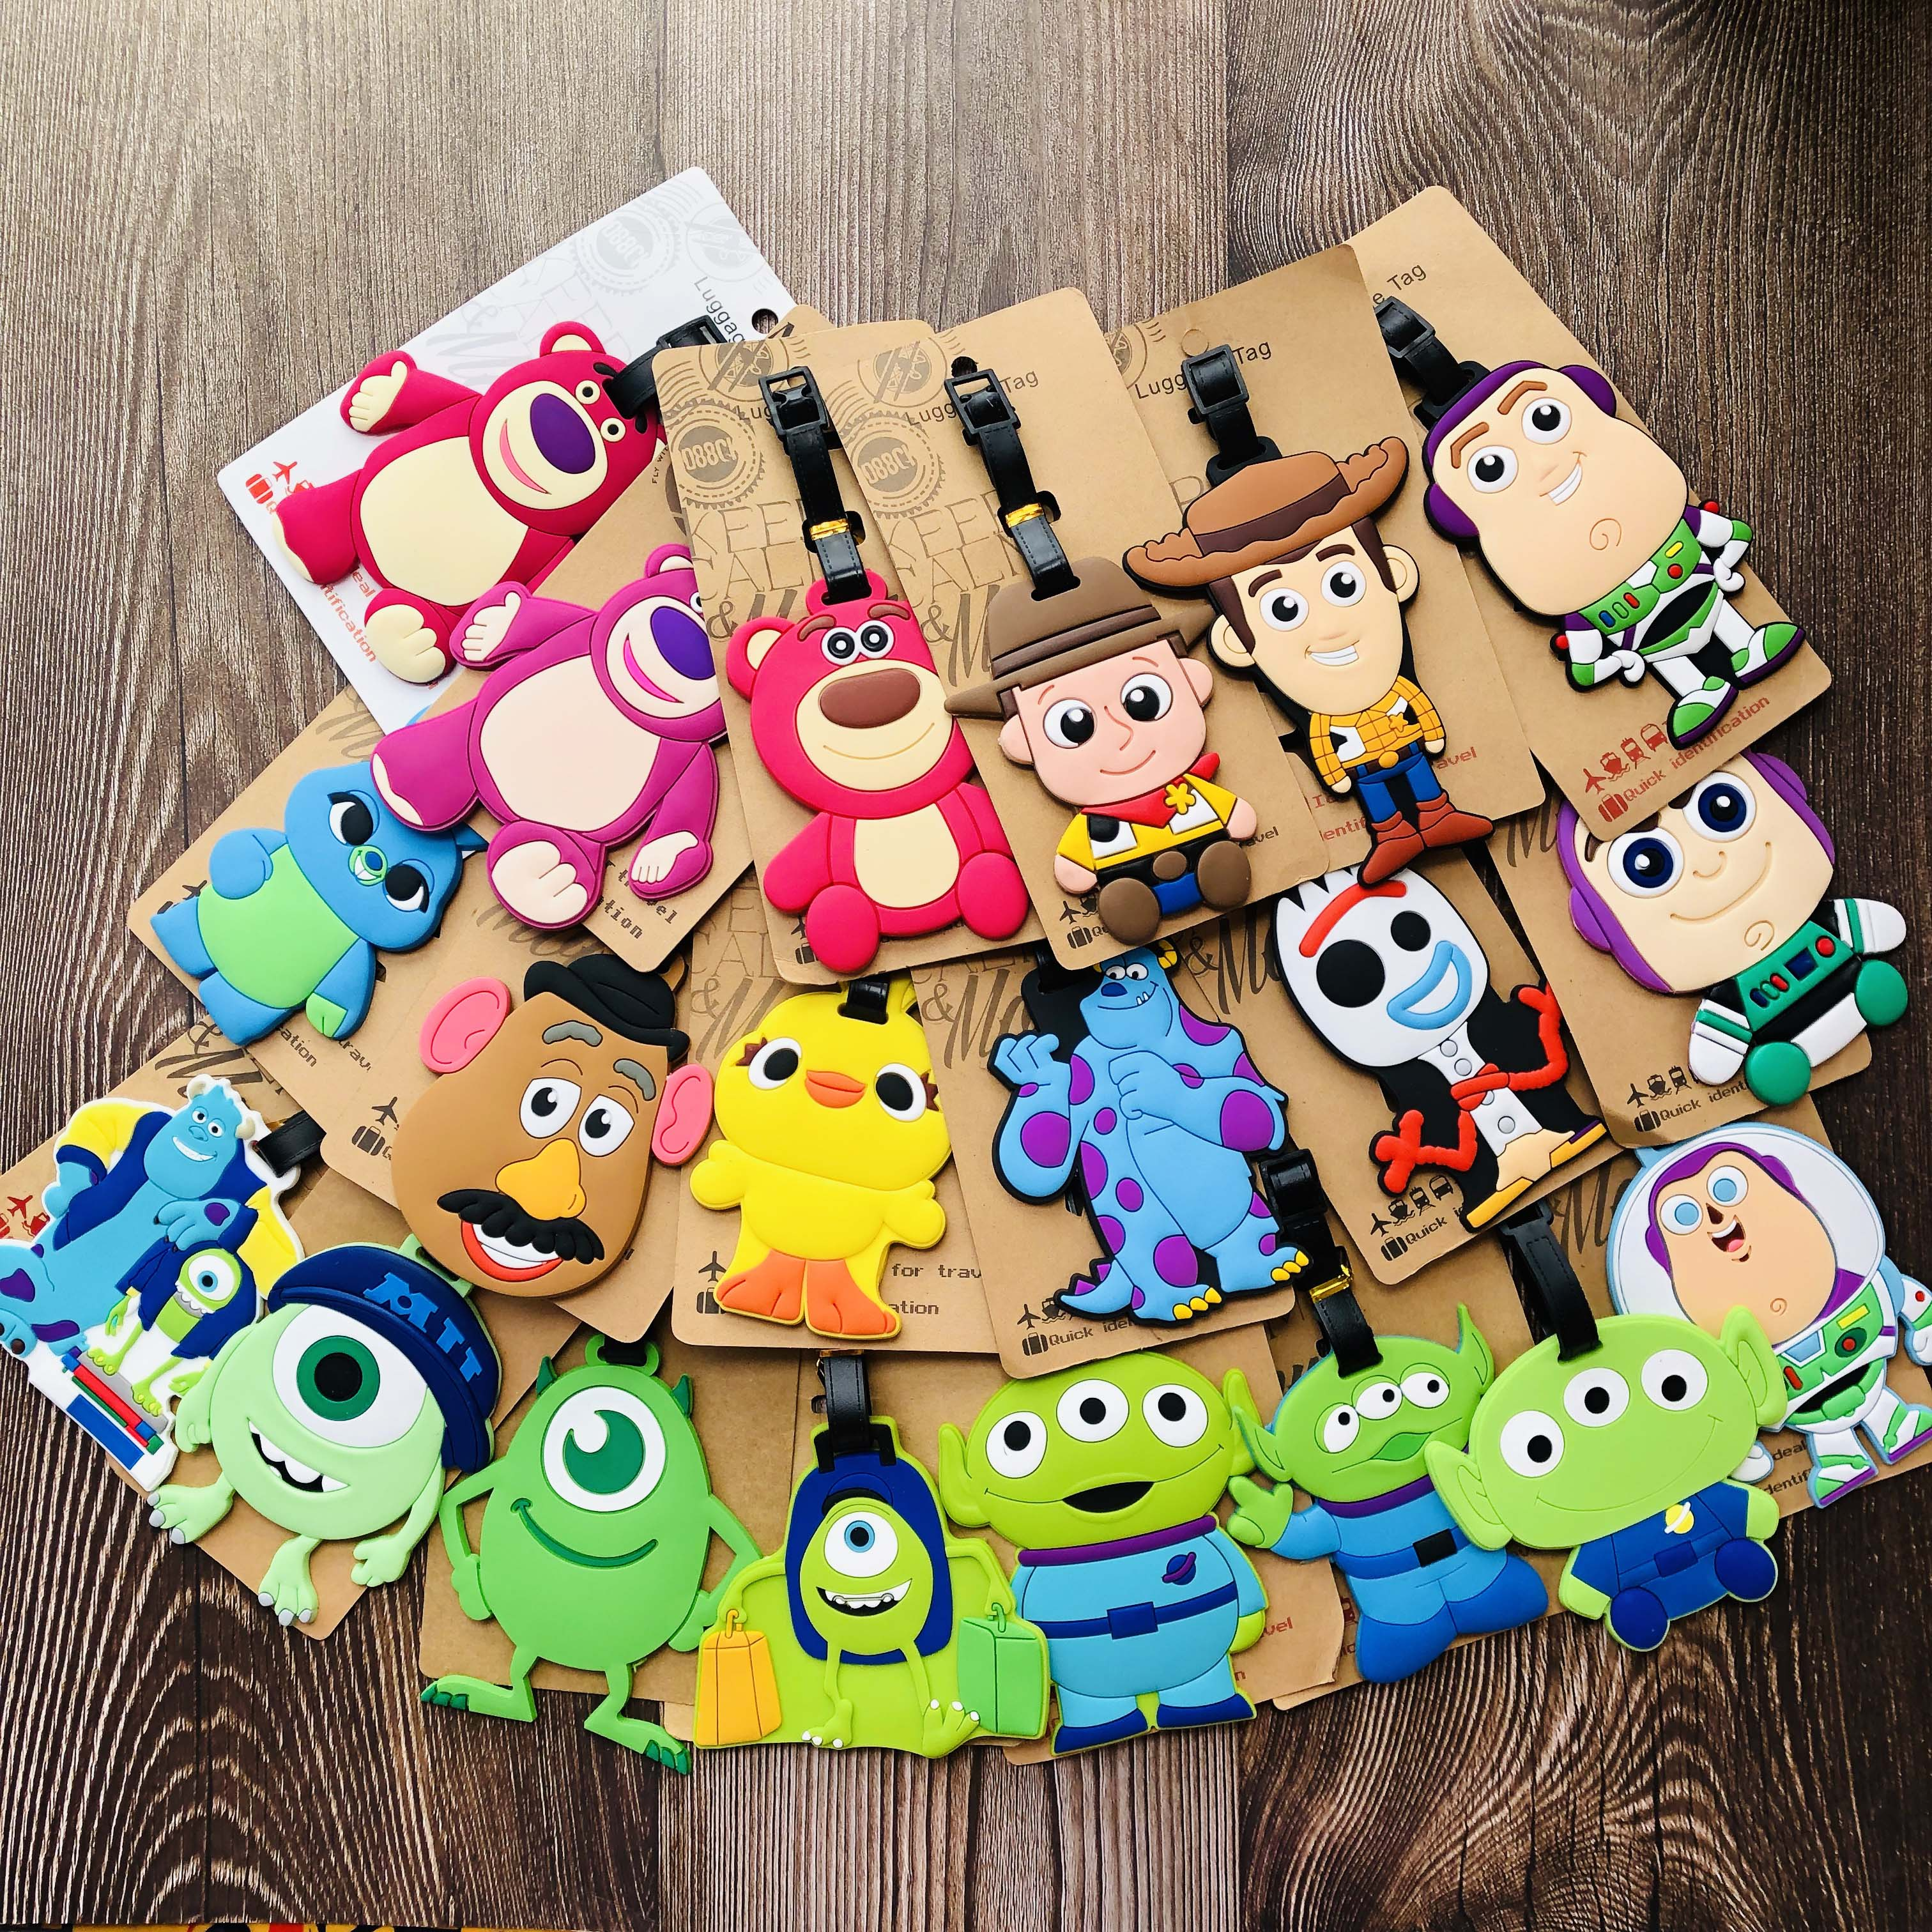 IVYYE Woody Aliens Buzz Anime Travel Accessories Luggage Tag Suitcase ID Portable Tags Holder Baggage Labels Gifts New